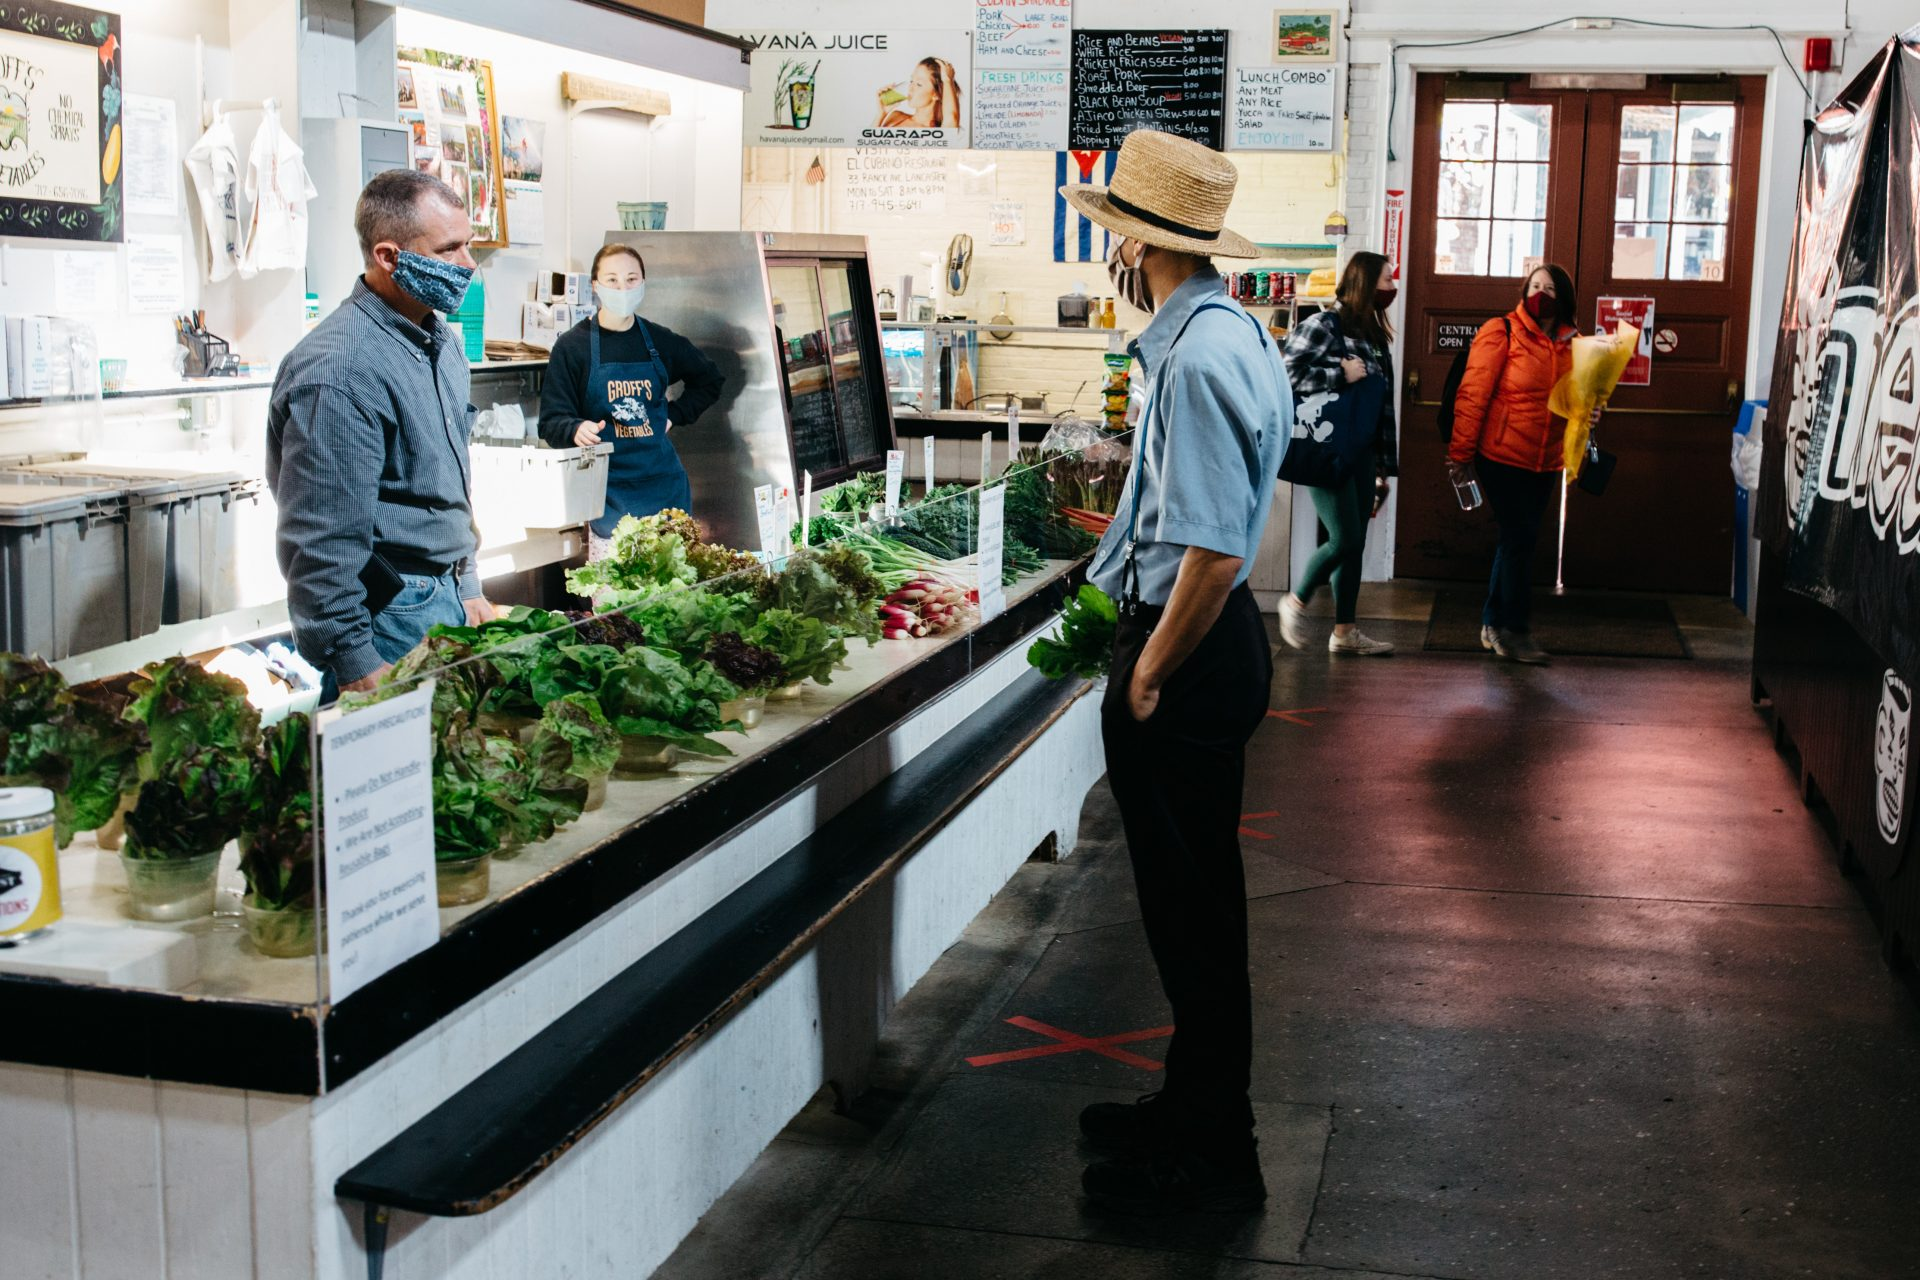 Vendors and shoppers don masks while at Lancaster Central Market on May 9, 2020.